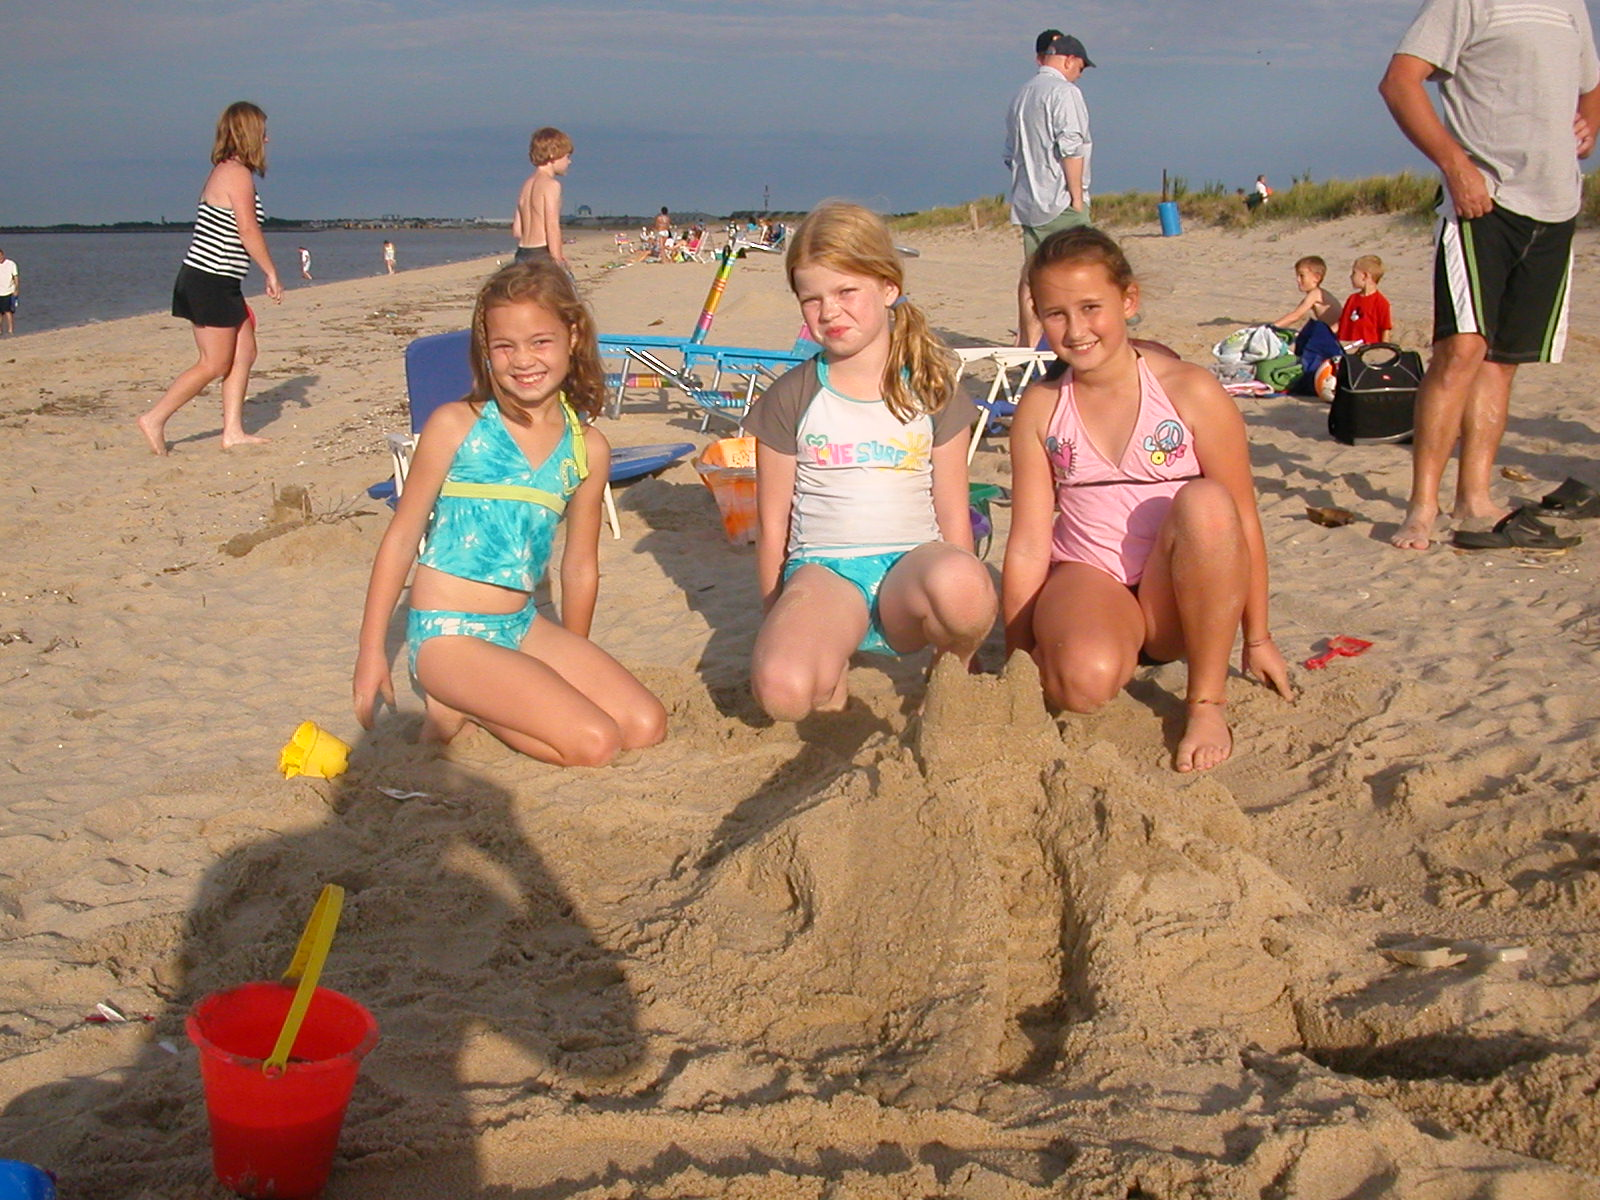 Caelan, Hannah, and Niemh, from Havertown, PA, with their castle